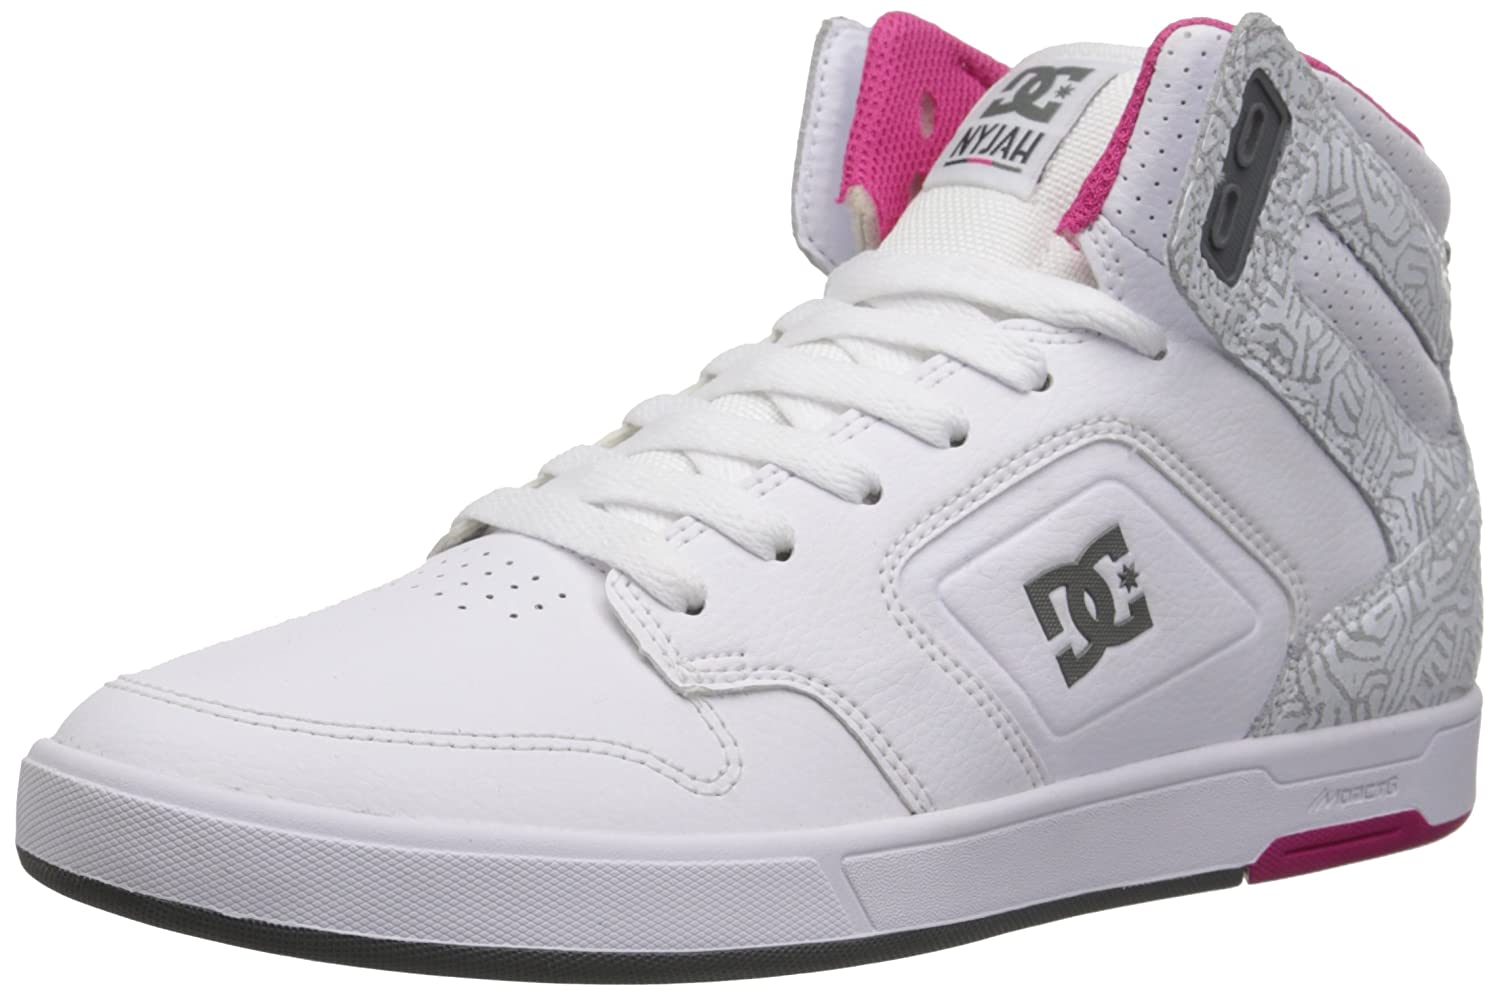 DC Shoes Nyjah High, Baskets mode femme 37 EU ADJS100048